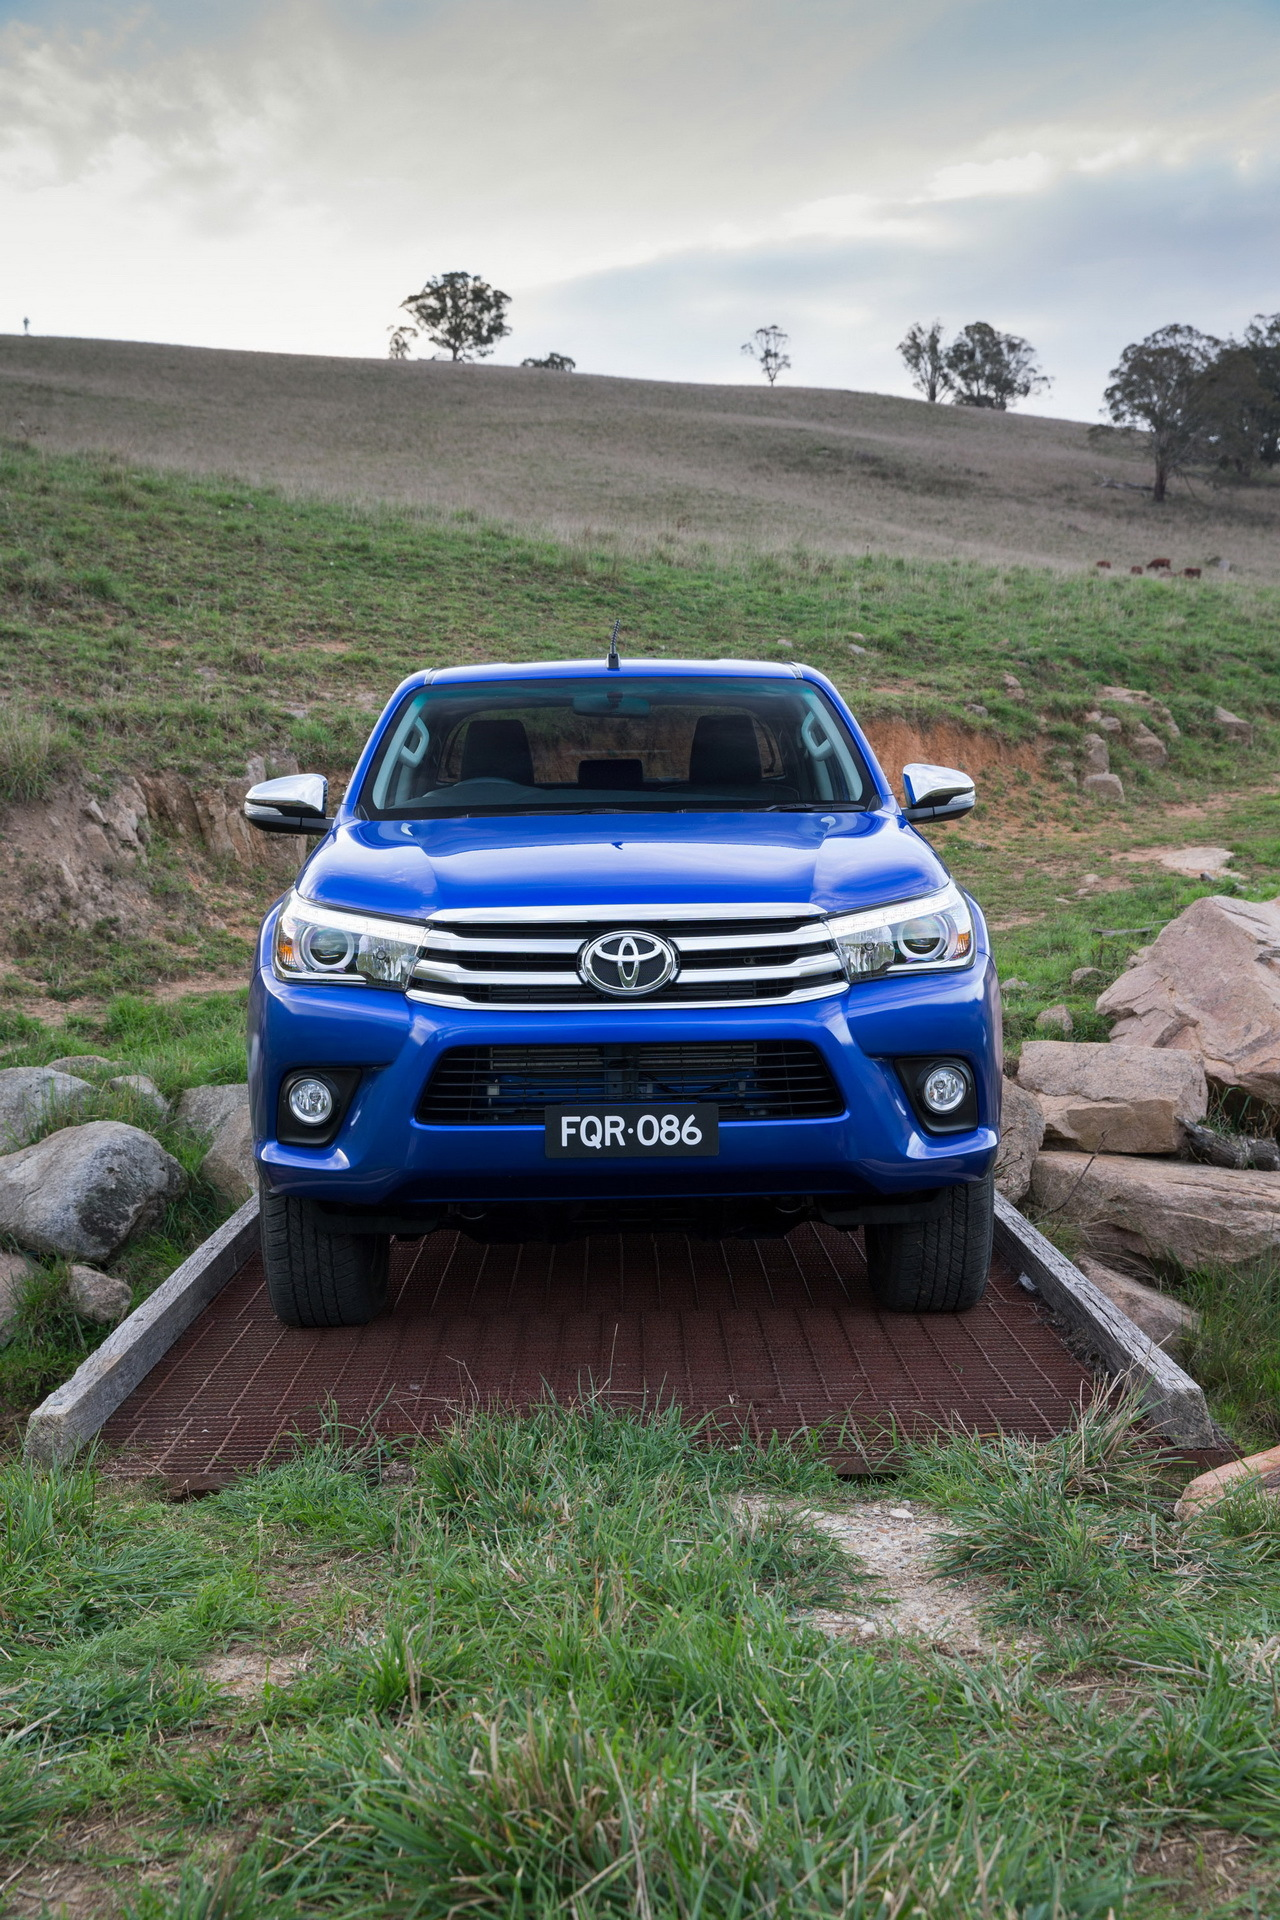 nouveau toyota hilux le num ro 8 photo 2 l 39 argus. Black Bedroom Furniture Sets. Home Design Ideas